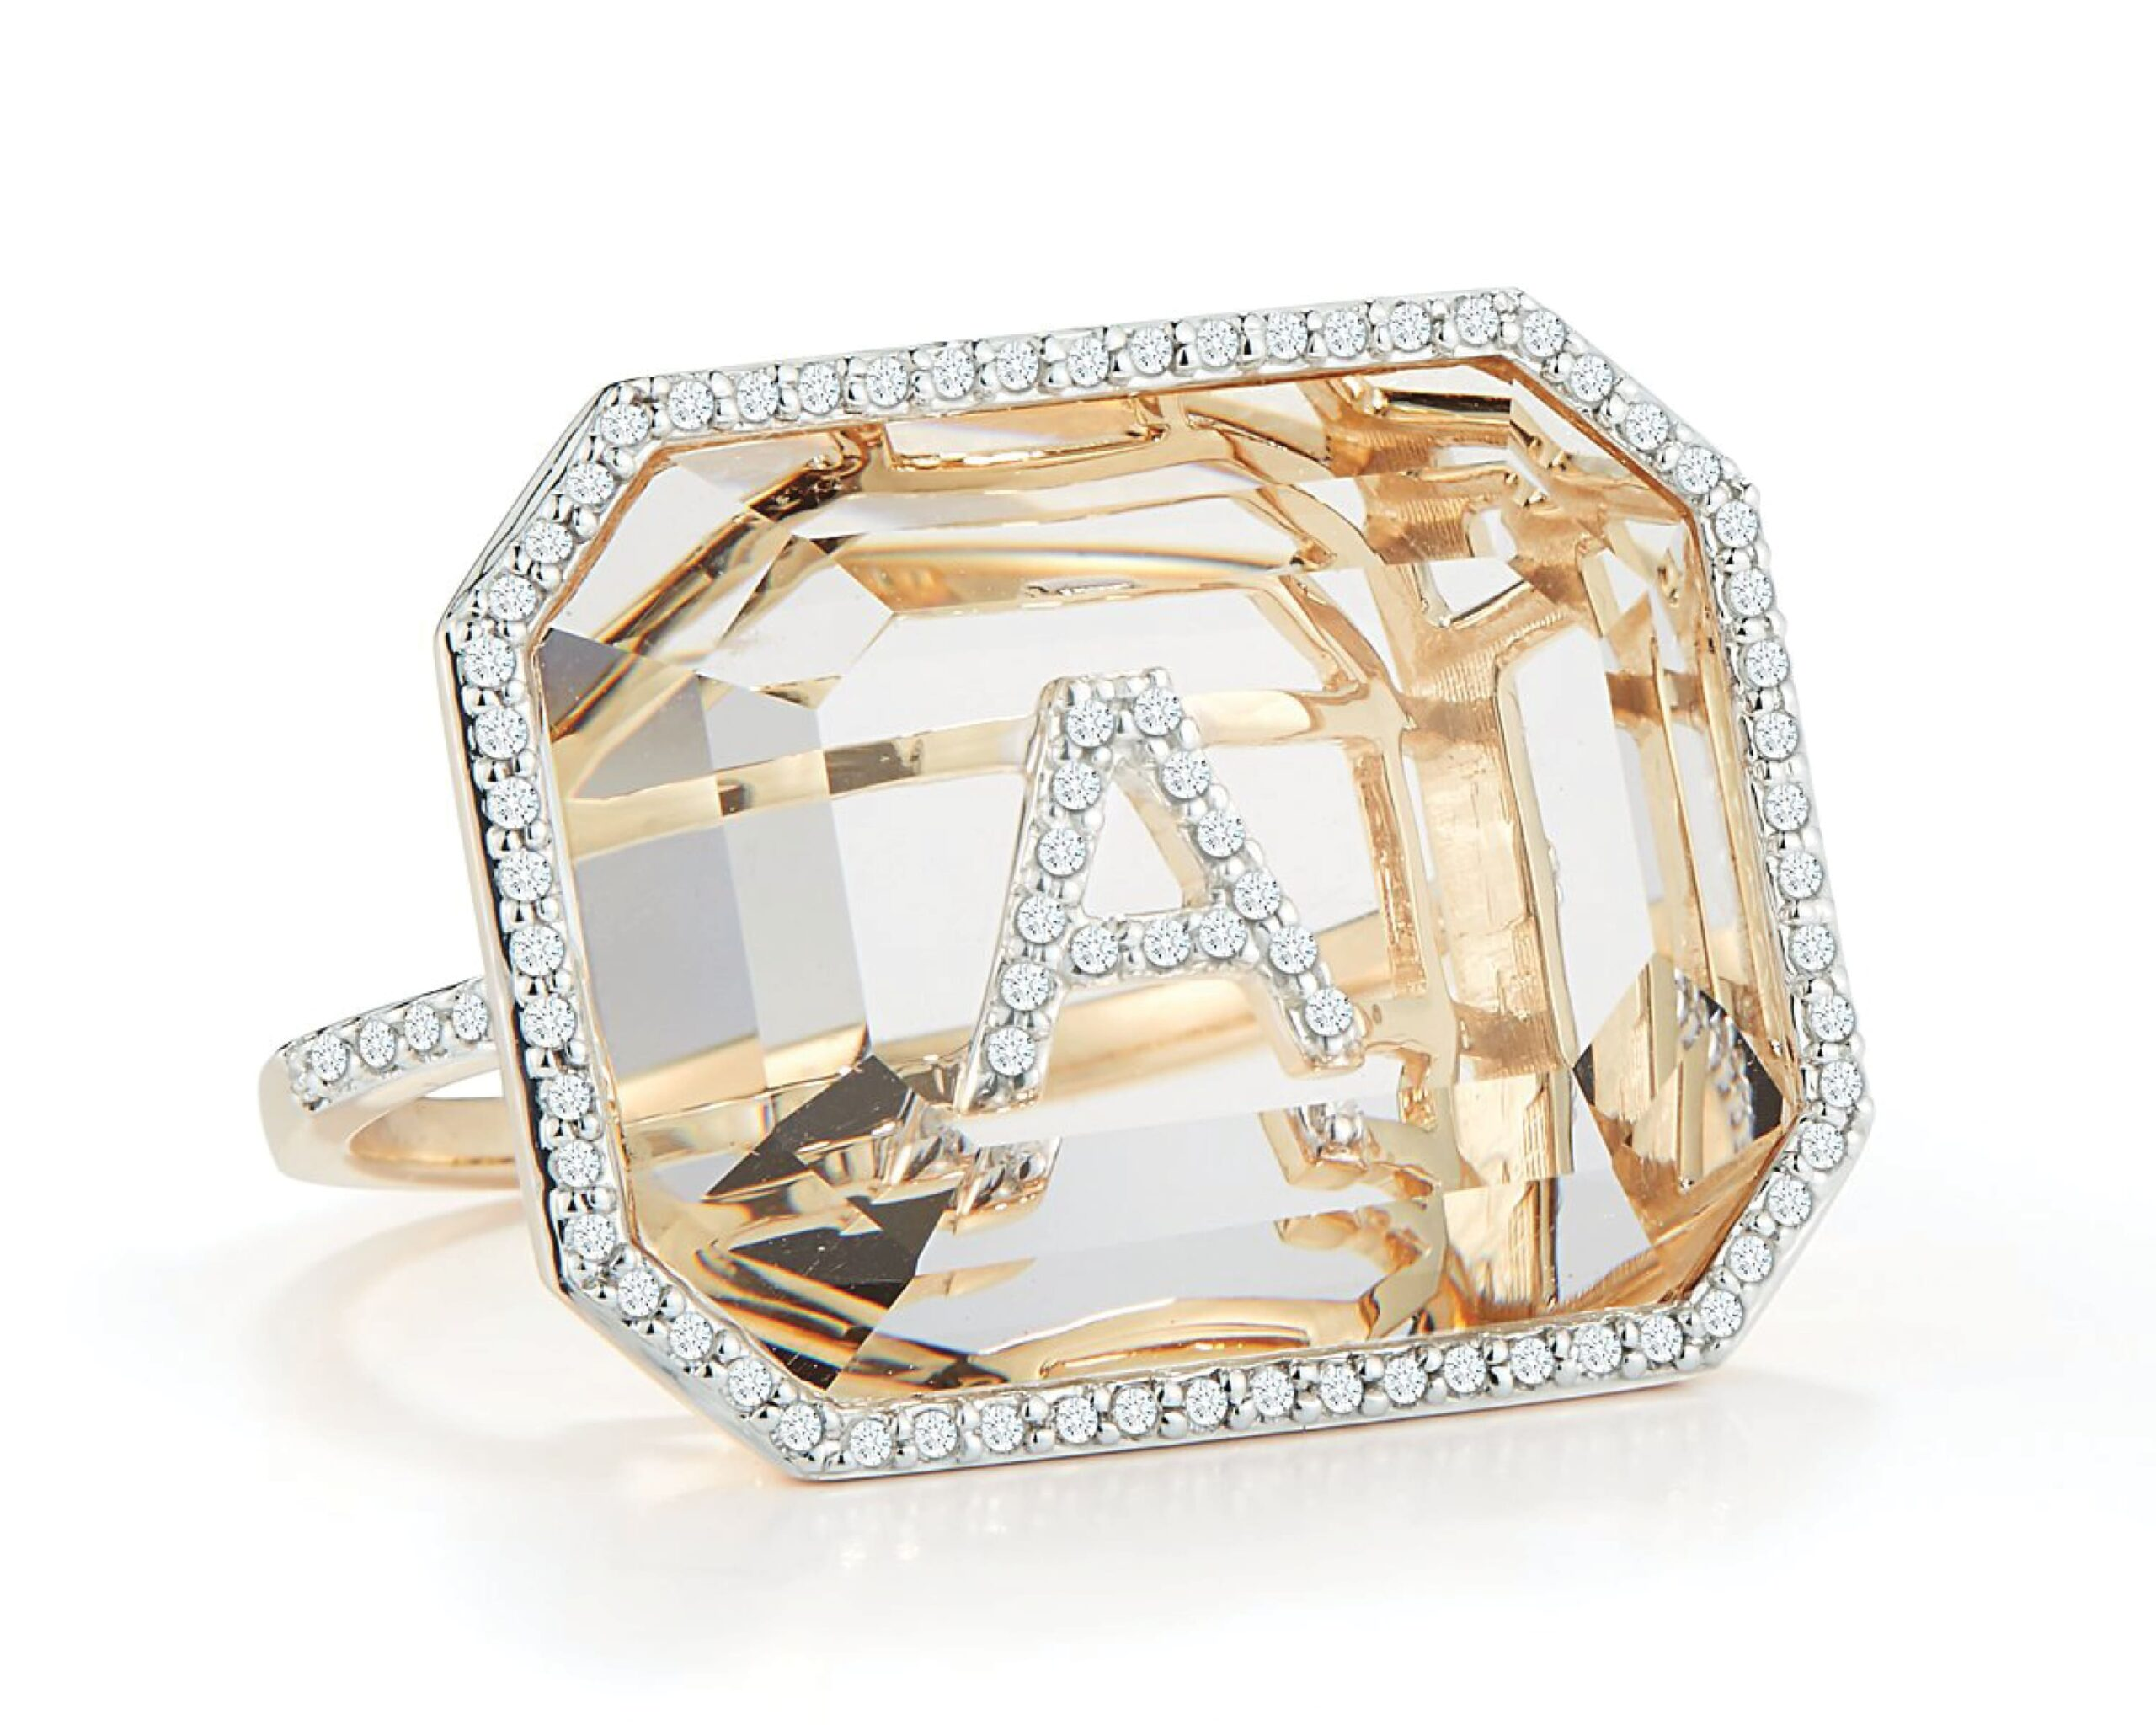 Crystal Quartz Secret Diamond Initial Ring from Mateo that features modern crystal quartz stones with diamond halos and diamond letters